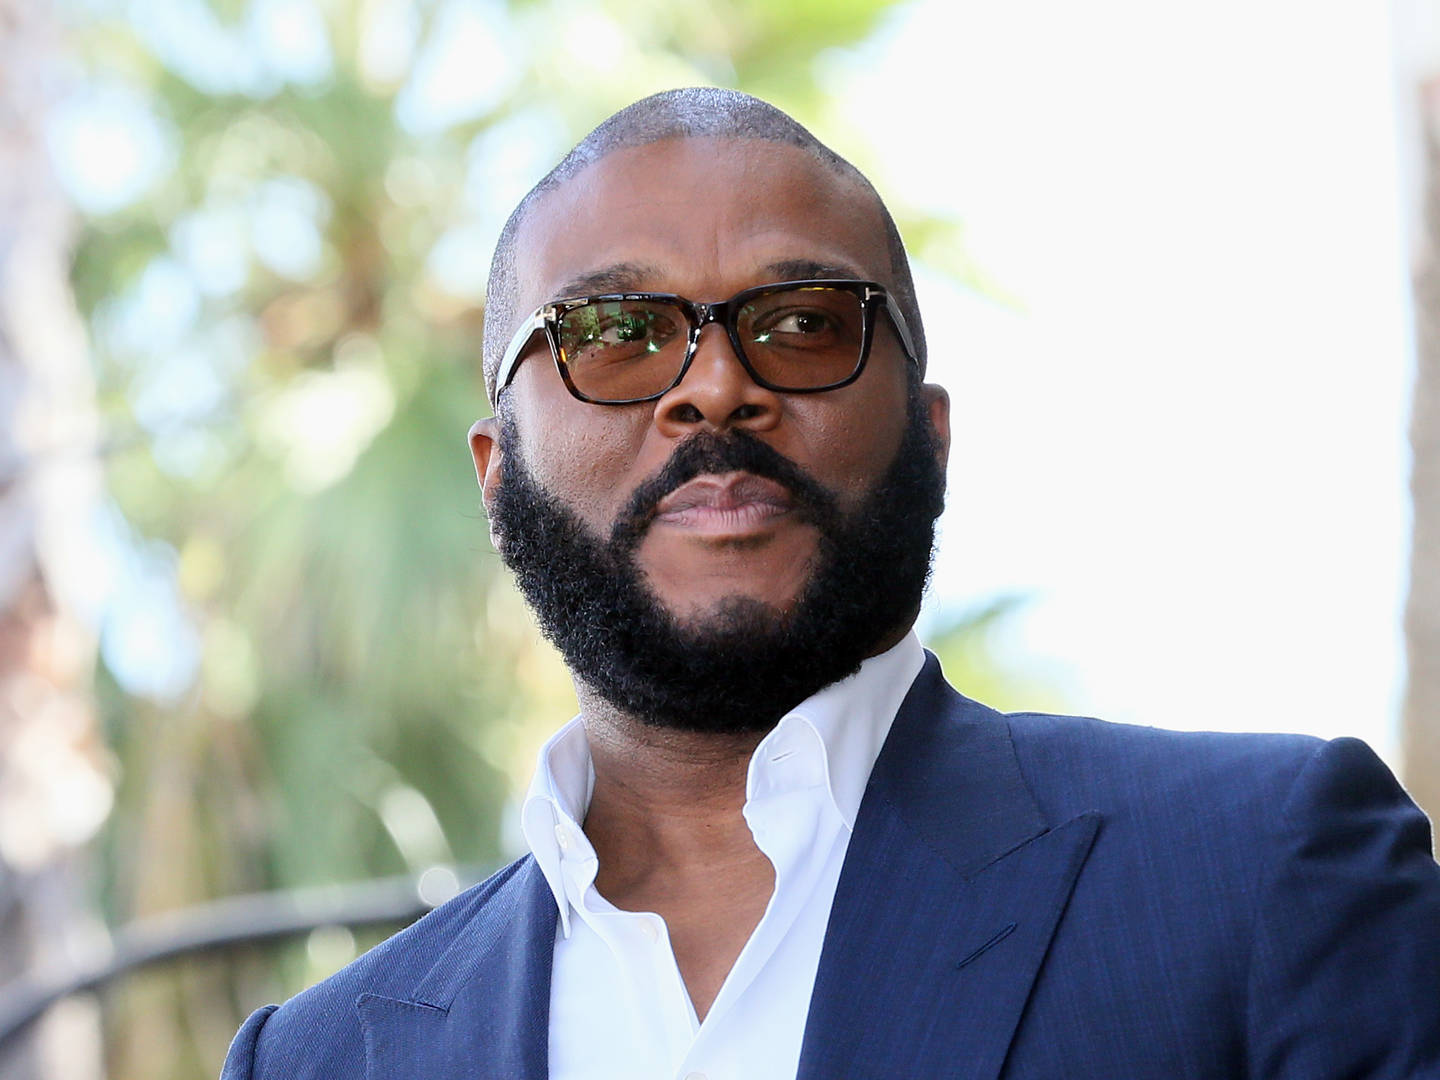 Tyler Perry's Nephew's Second Autopsy Points To Suicide: Report